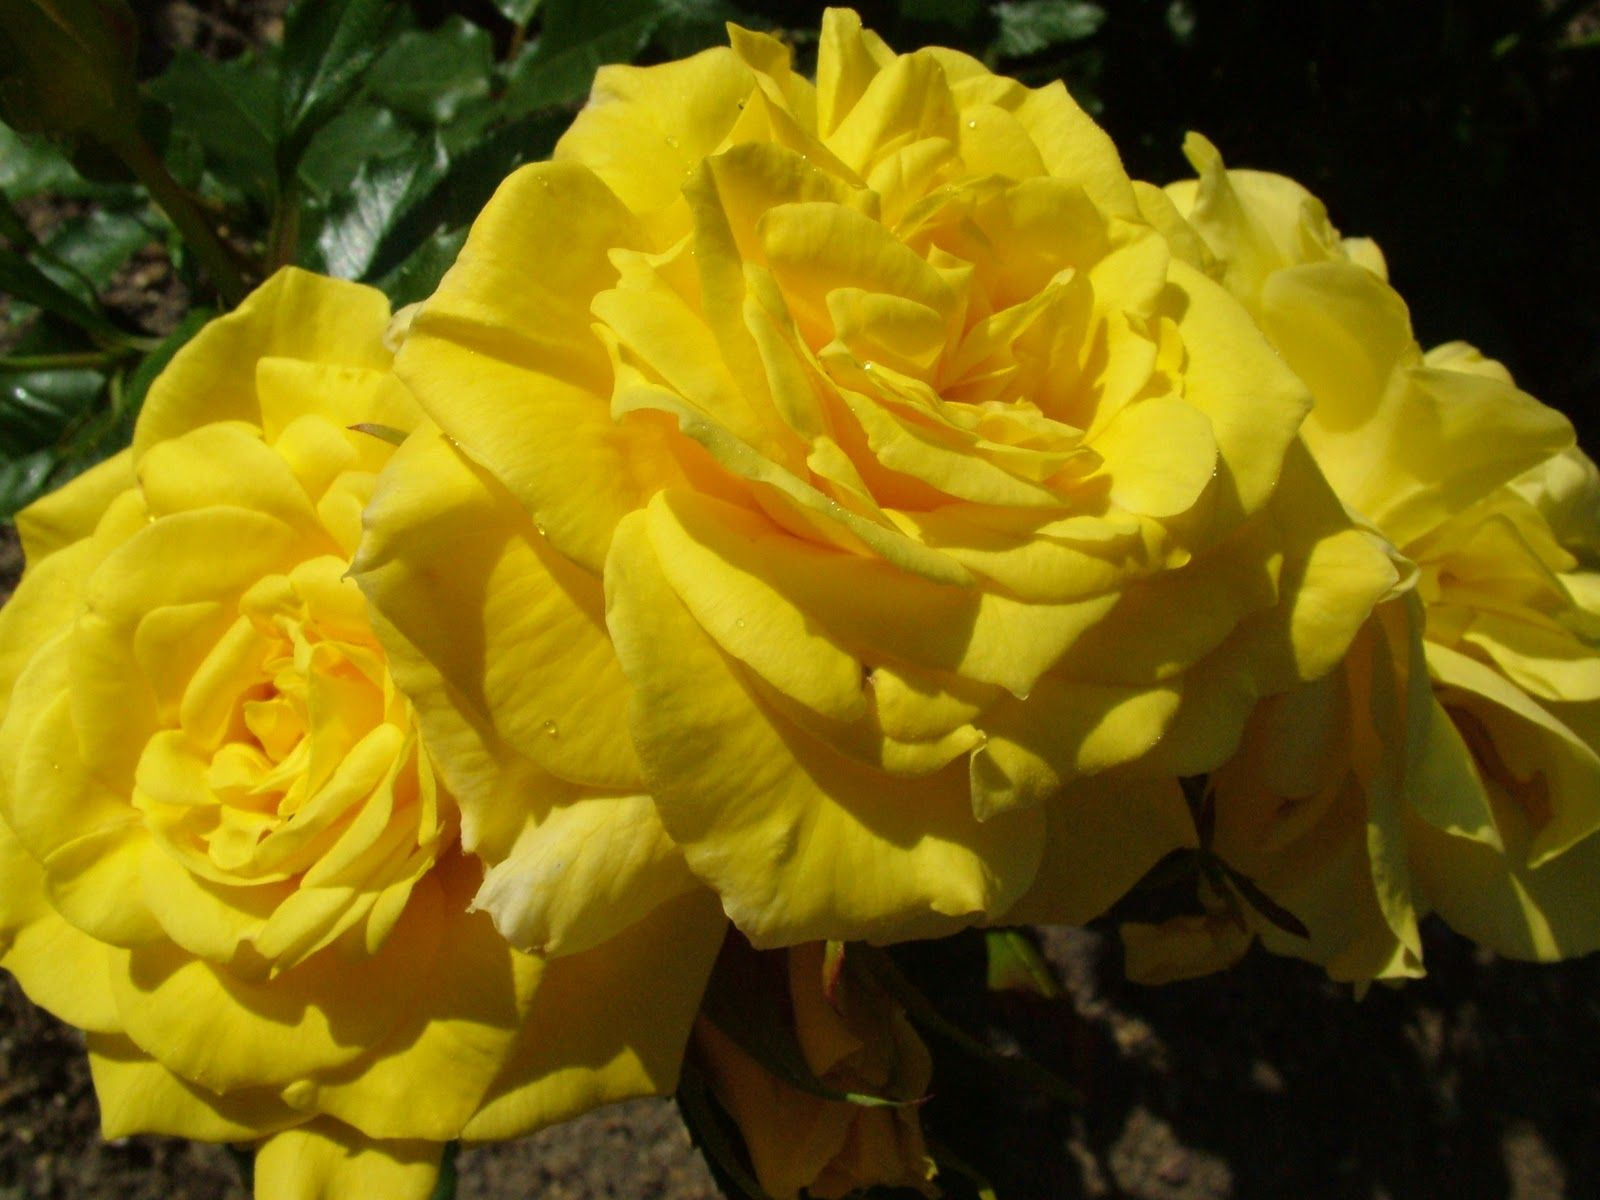 Yellow Rose Flowers High Quality Wallpaper Free Download Hd For Desktop Background Iphone Computer